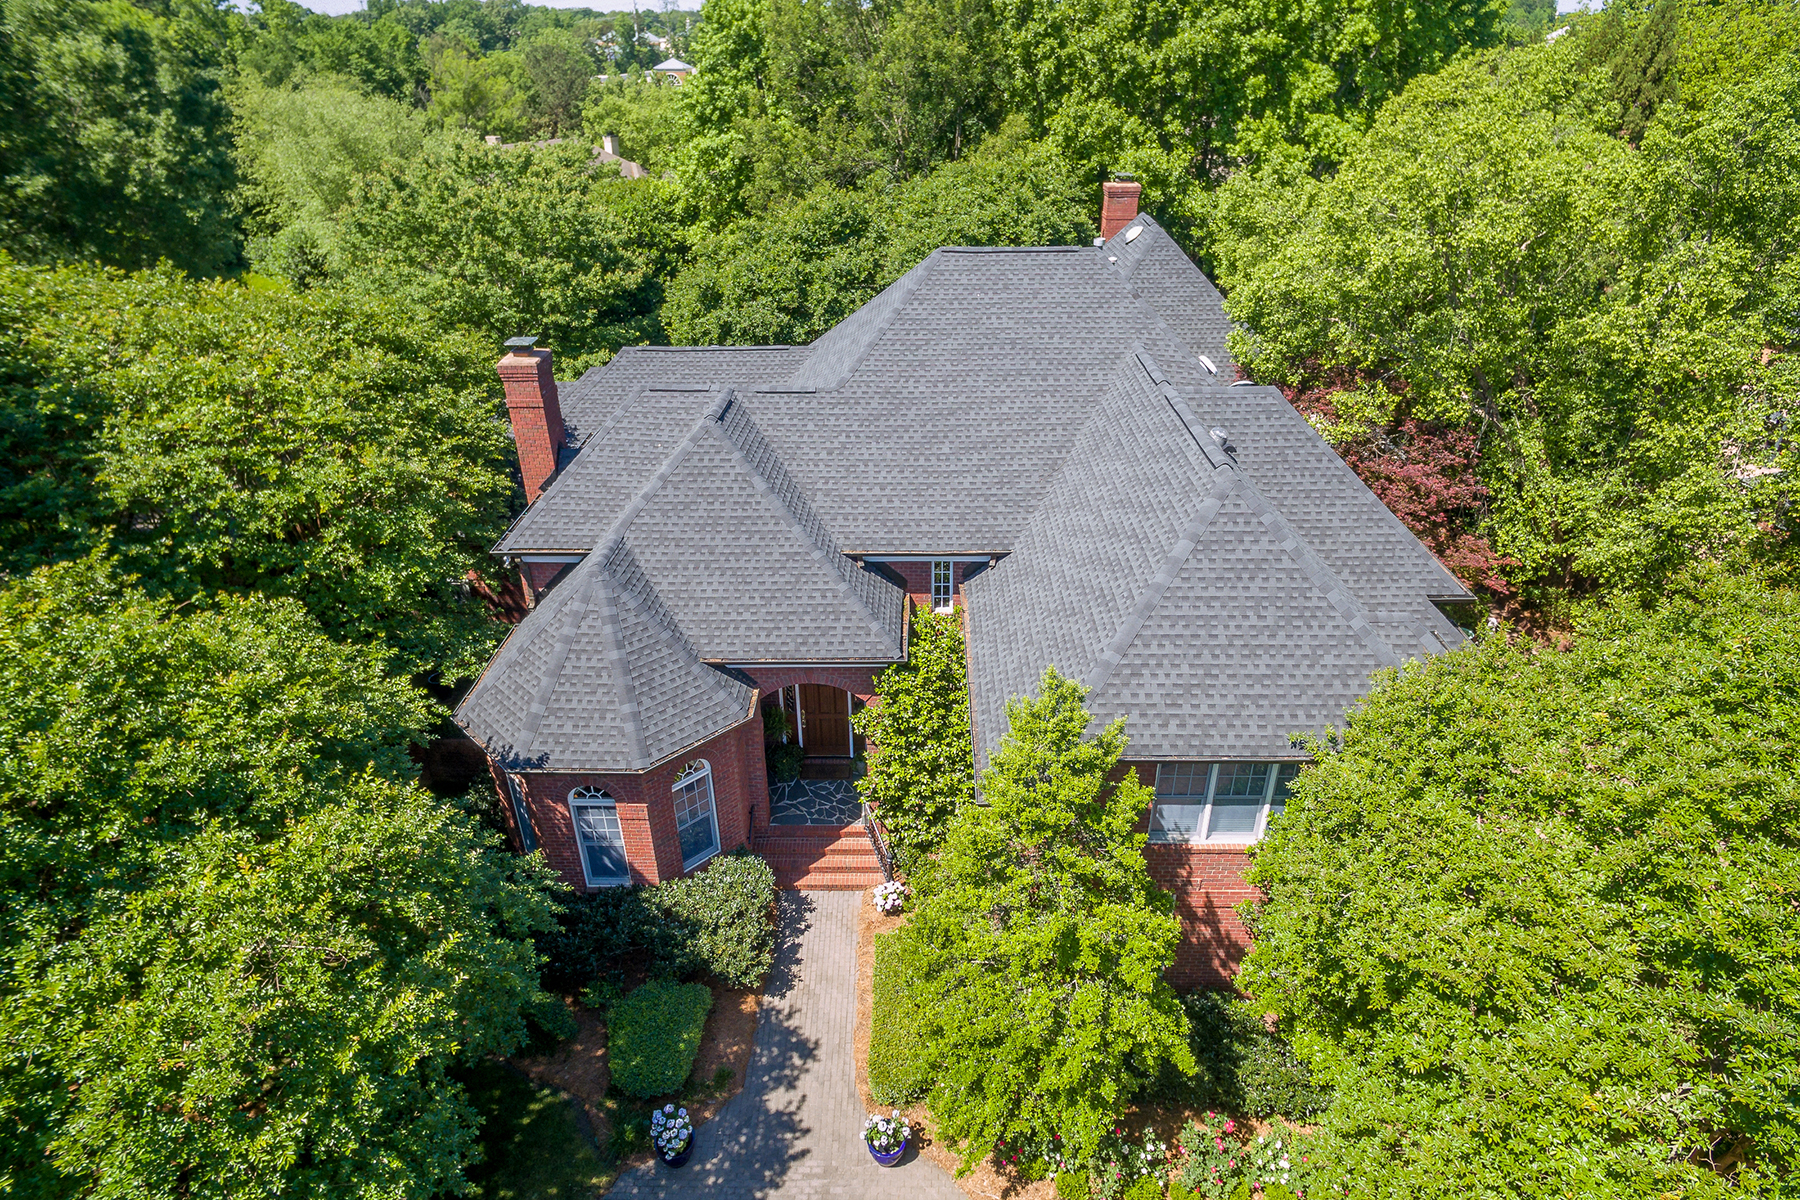 Single Family Home for Sale at 4328 Cameron Oaks Dr , Charlotte, NC 28211 4328 Cameron Oaks Dr Charlotte, North Carolina, 28211 United States